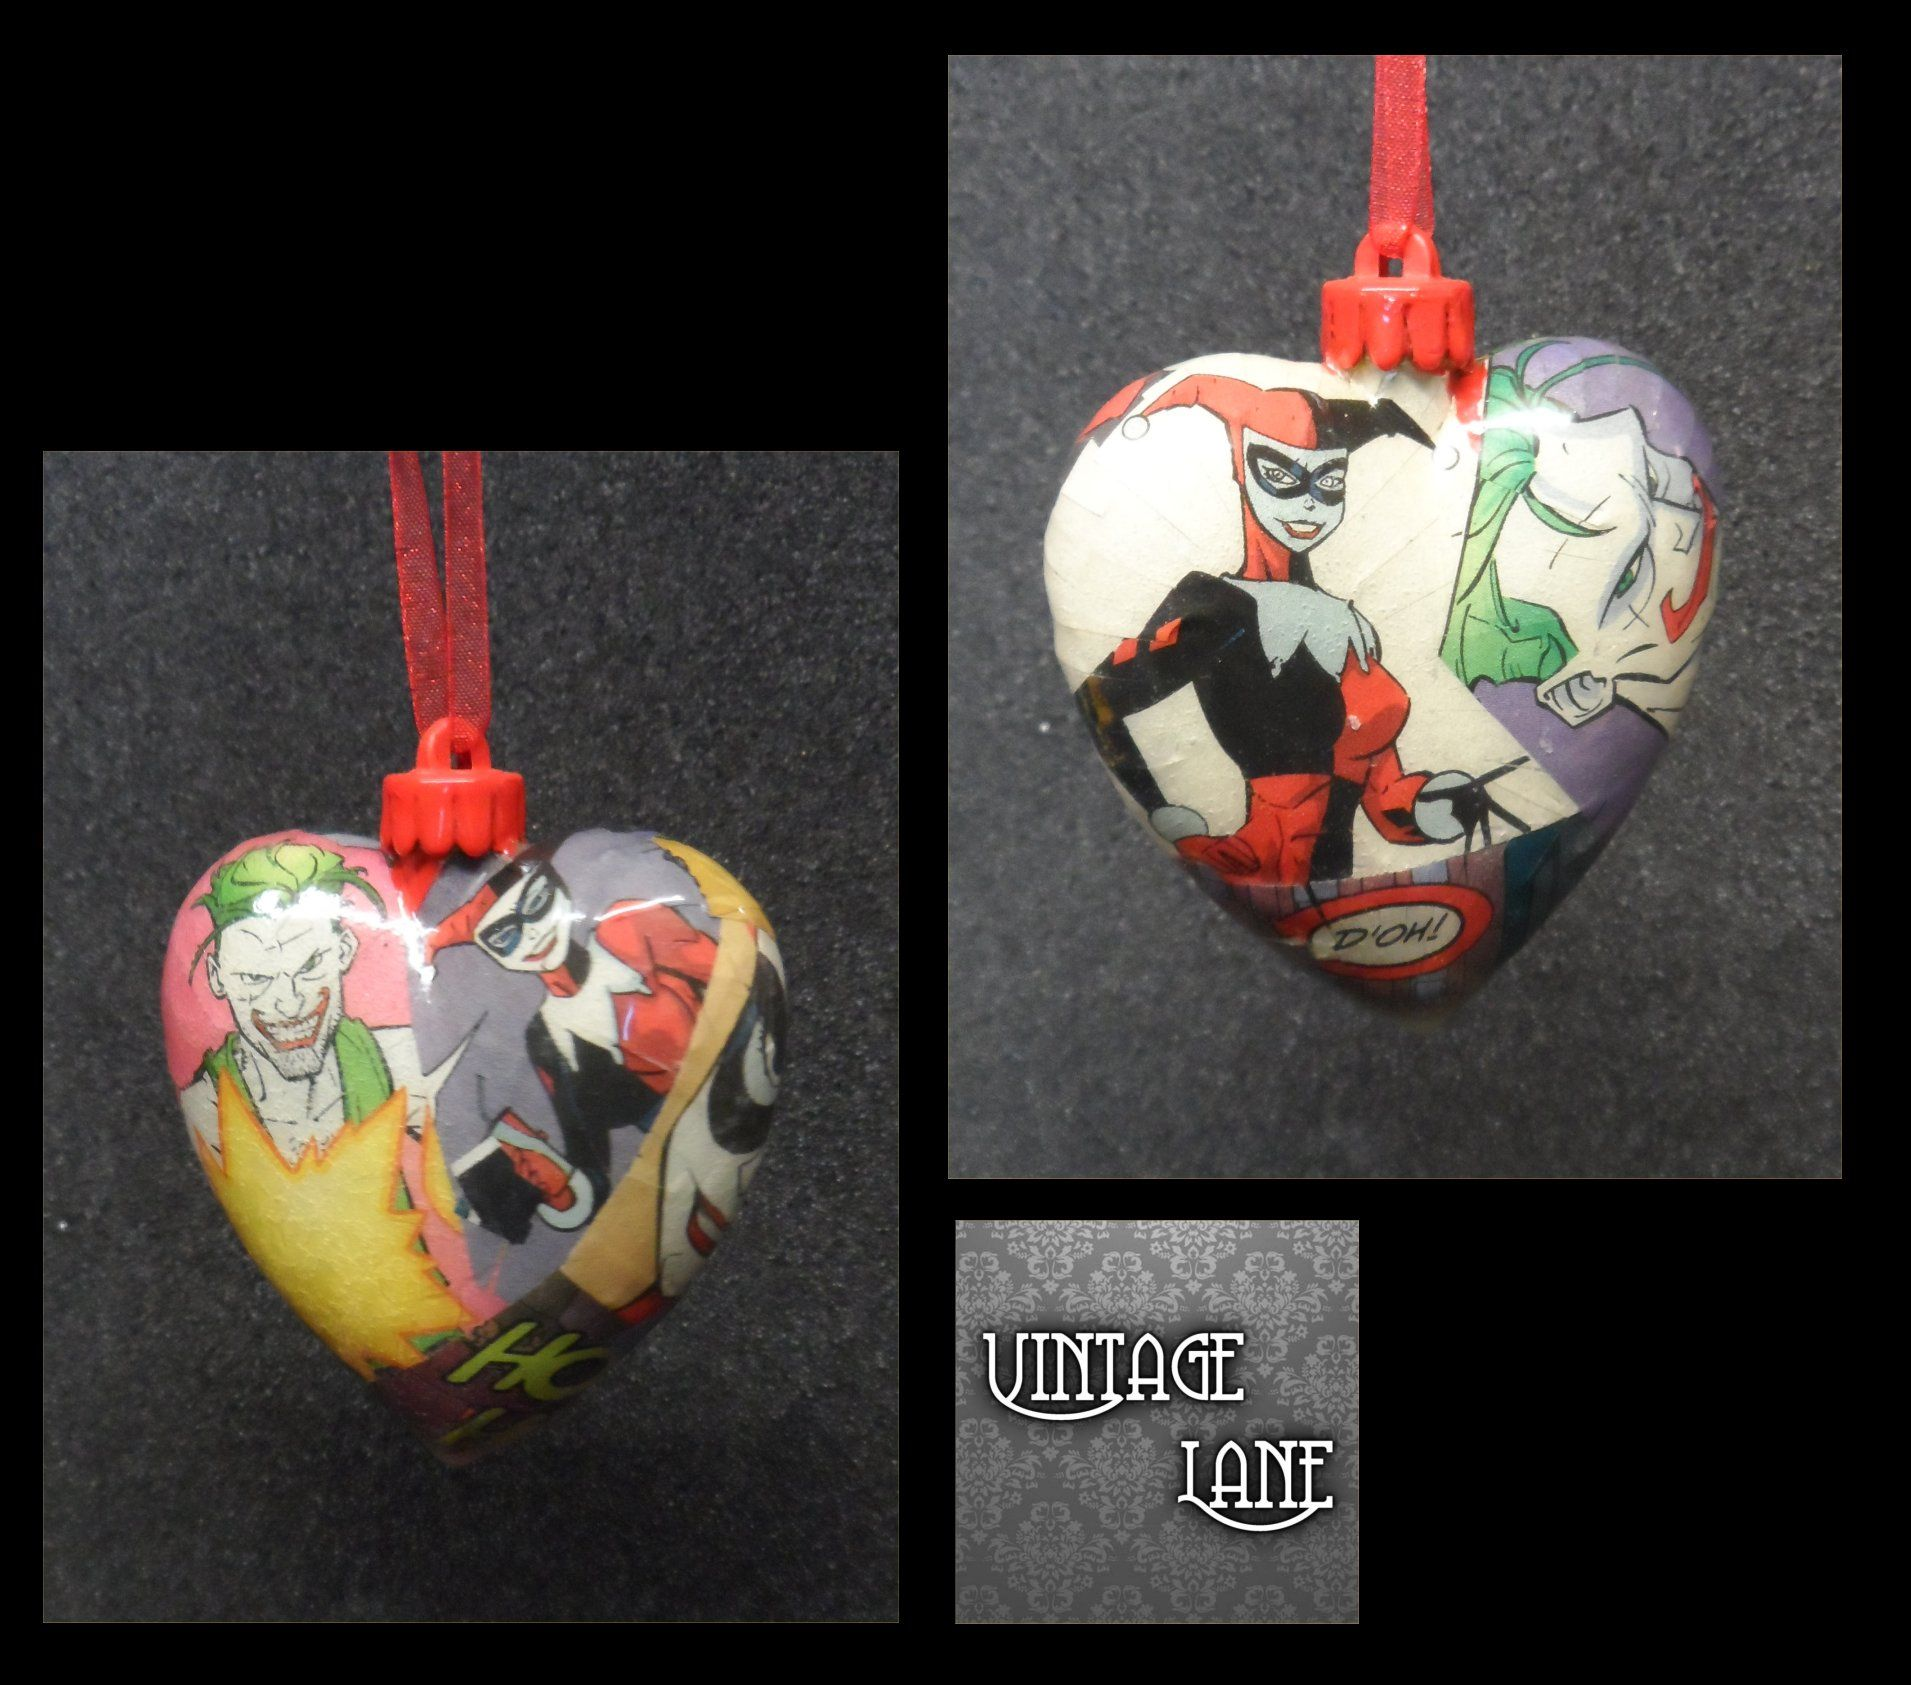 Harley Quinn and The Joker heart baubles for sale at www.vintagelane.co.uk